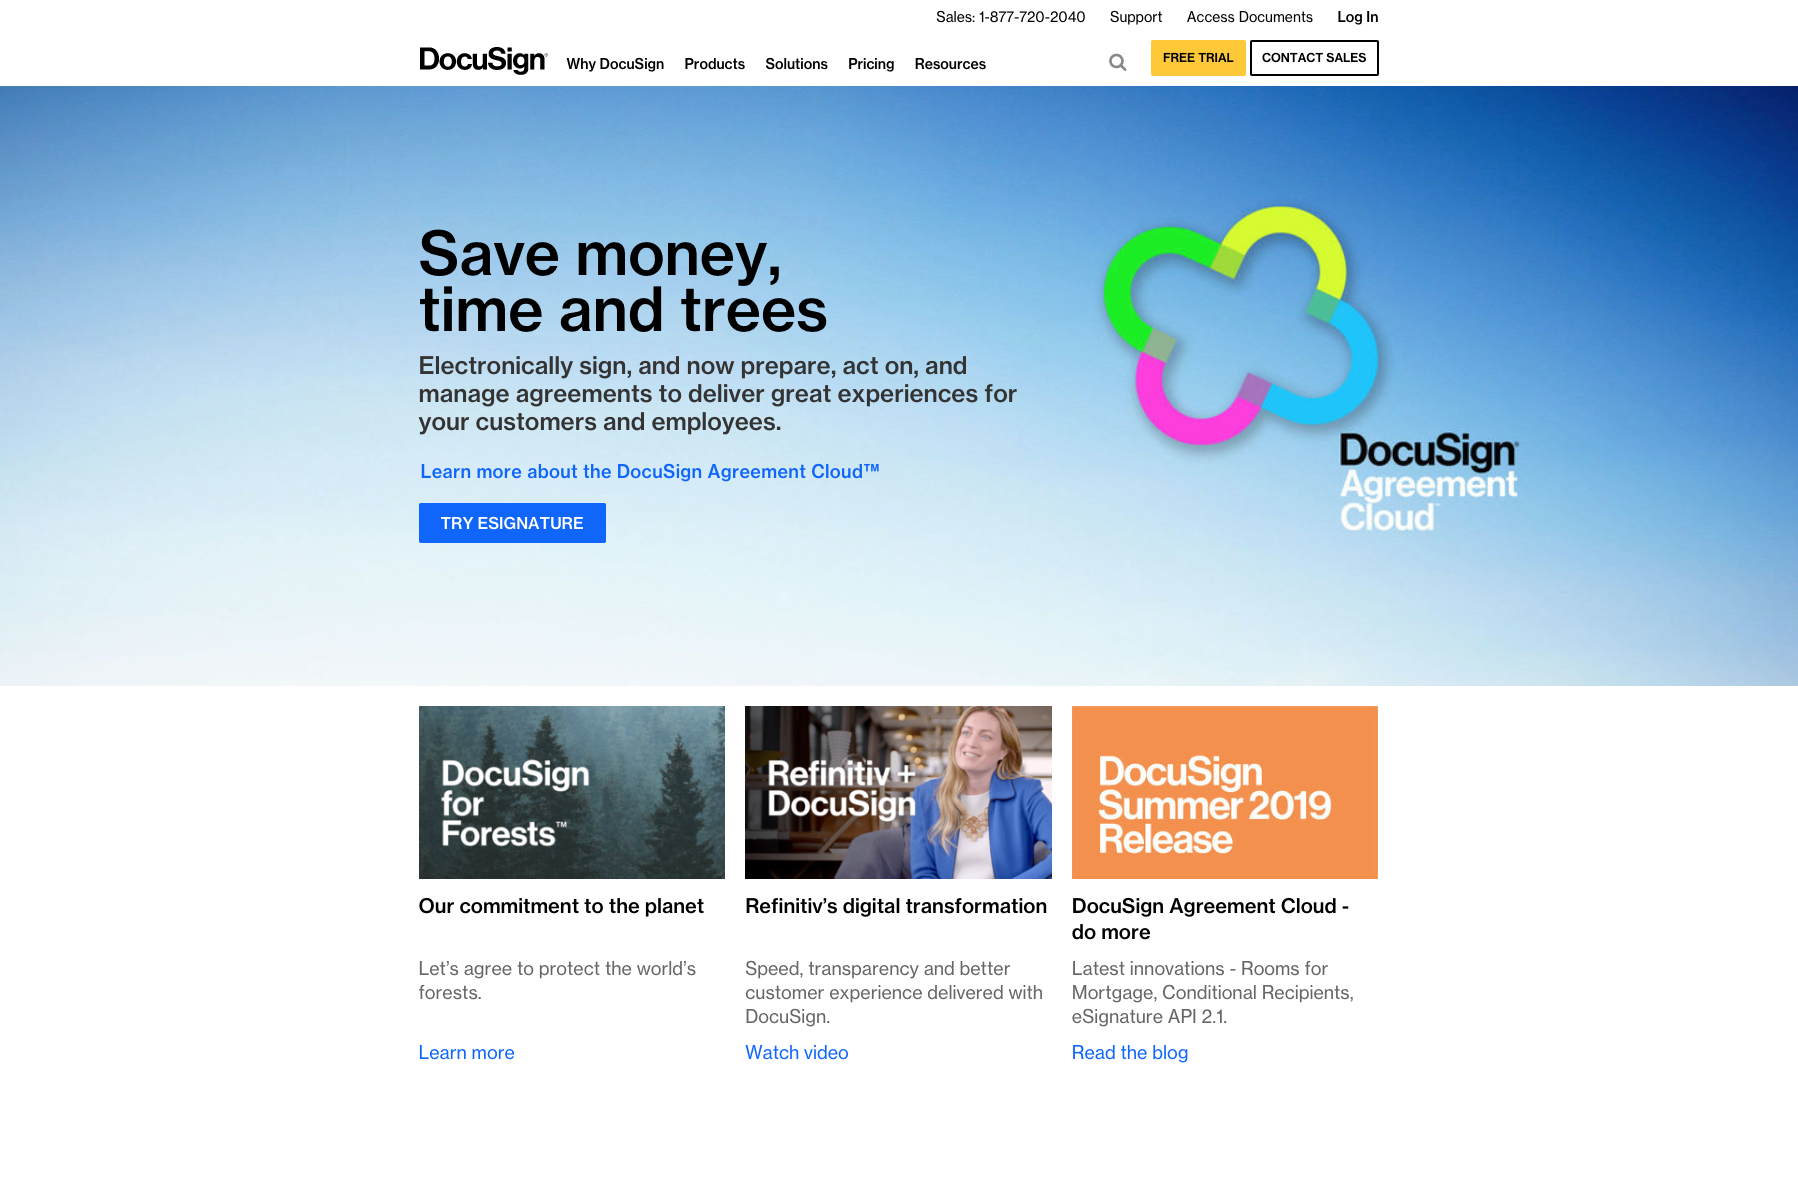 DocuSign website